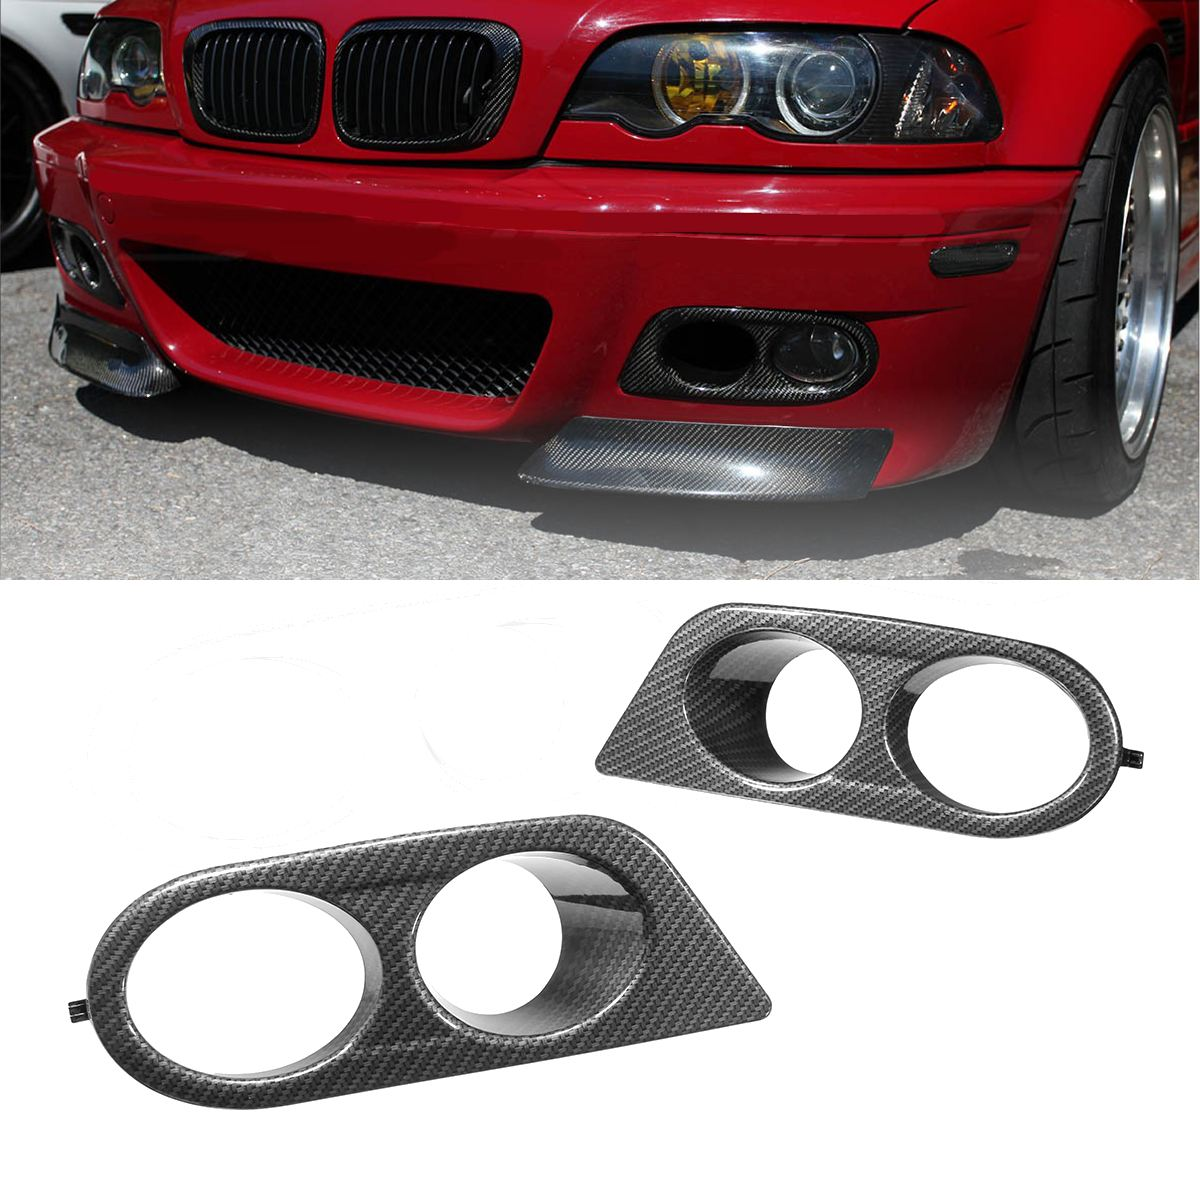 Matte black m color front car style radiator racing grills for bmw pair car fog light covers surround air duct for bmw e46 m3 2001 2006 carbon fandeluxe Images